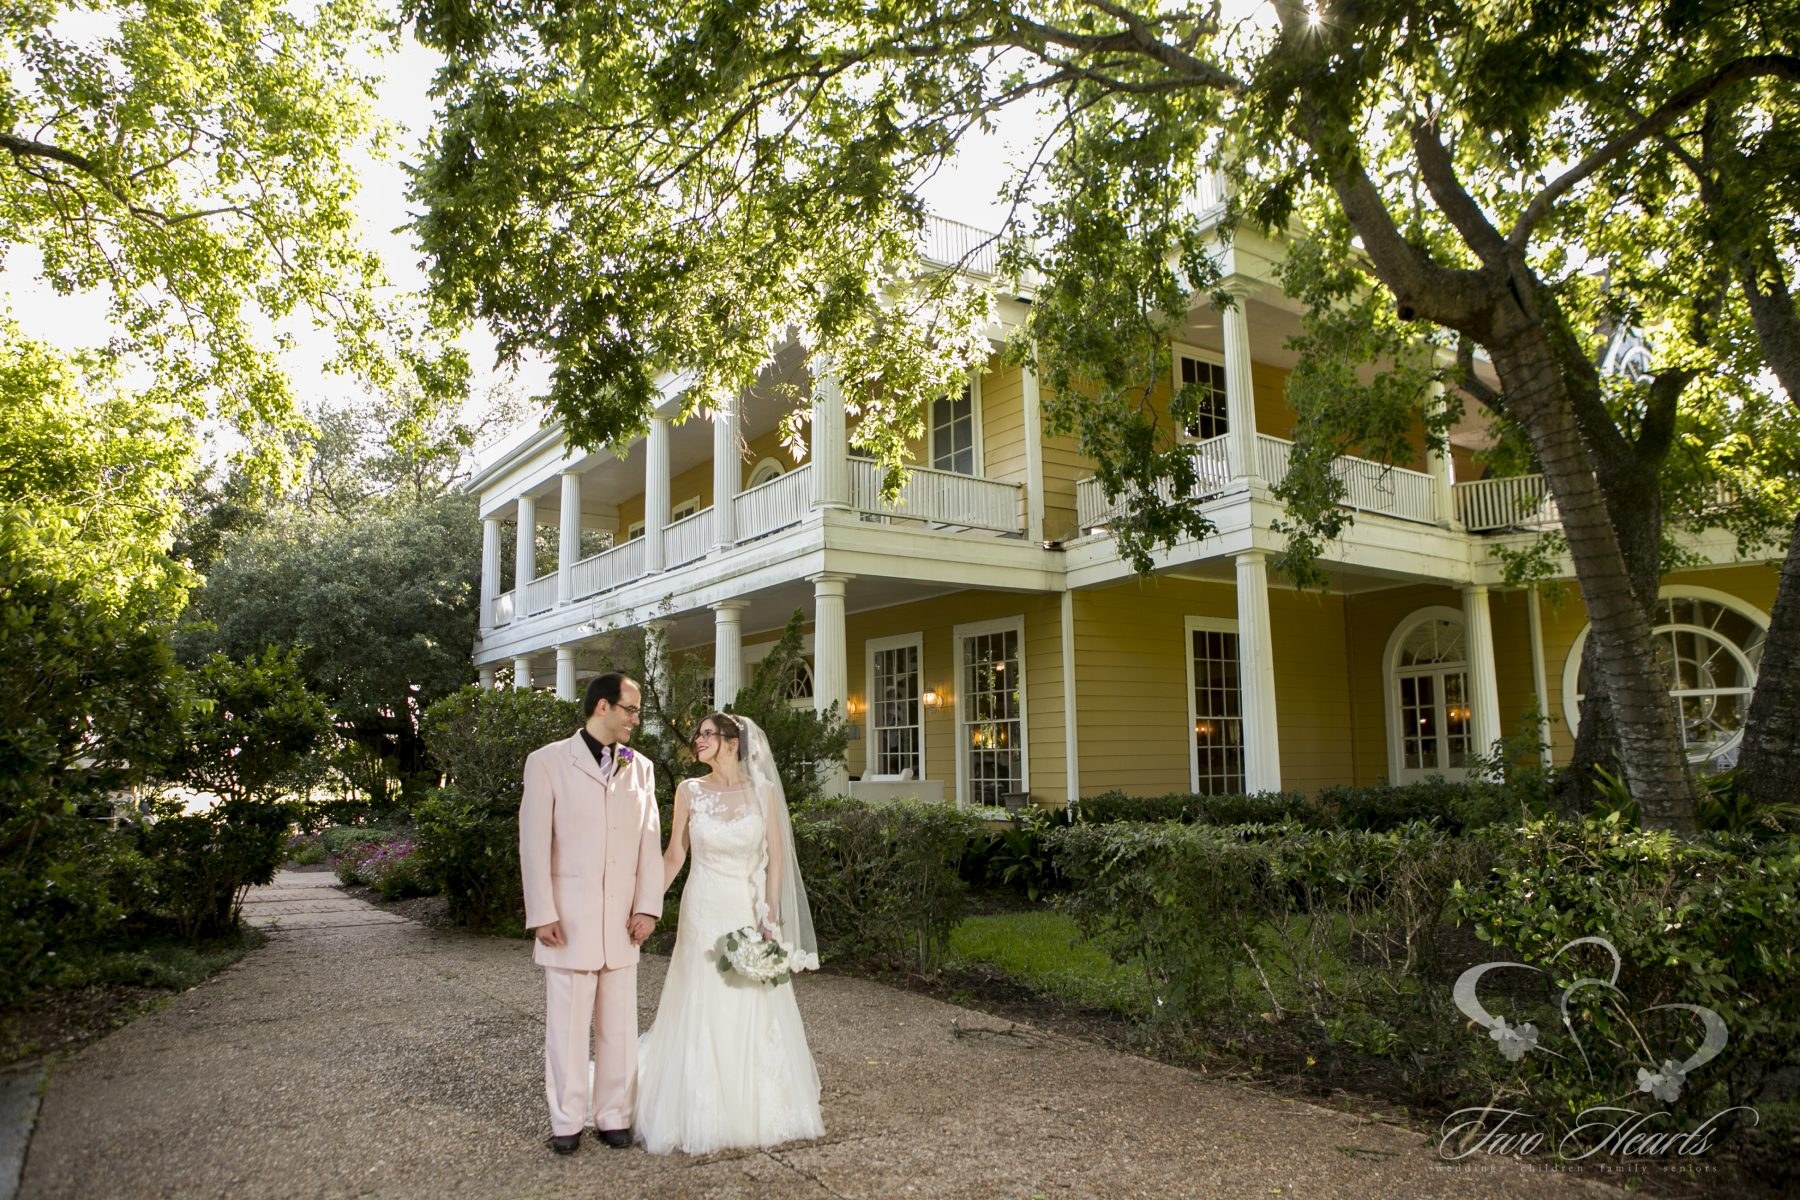 Houston Wedding Video - What We Want You To Know